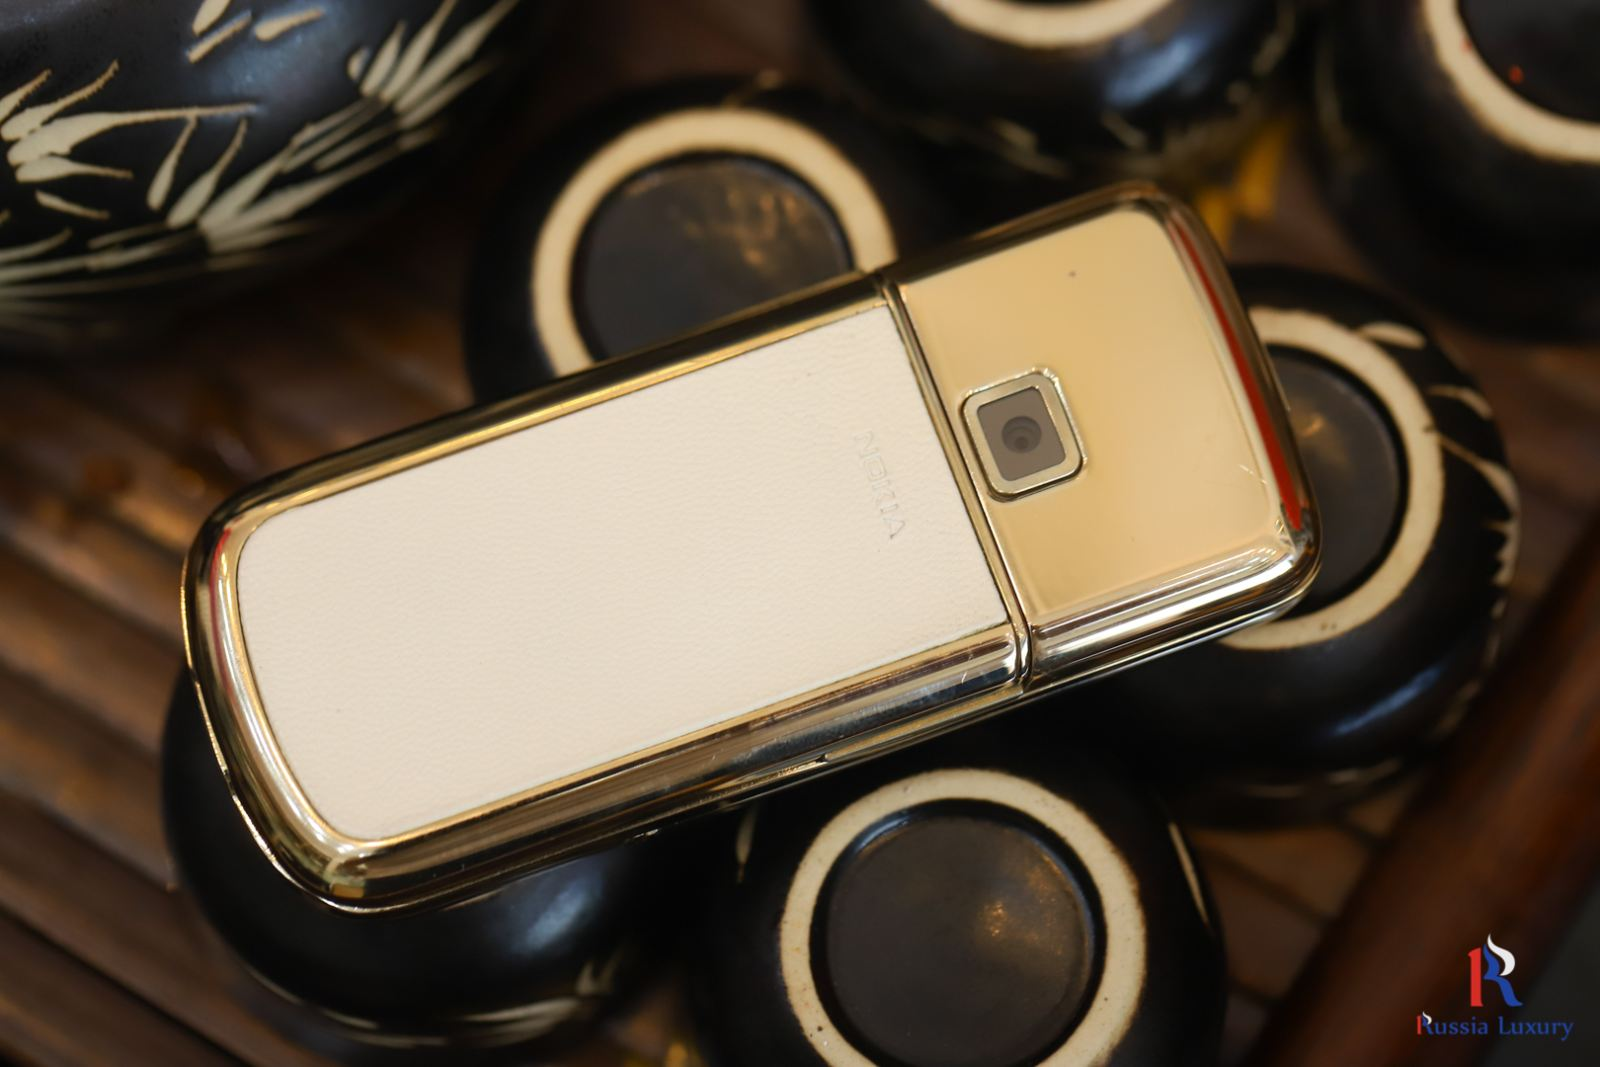 Nokia 8800 Gold Arte (Fullbox) 4